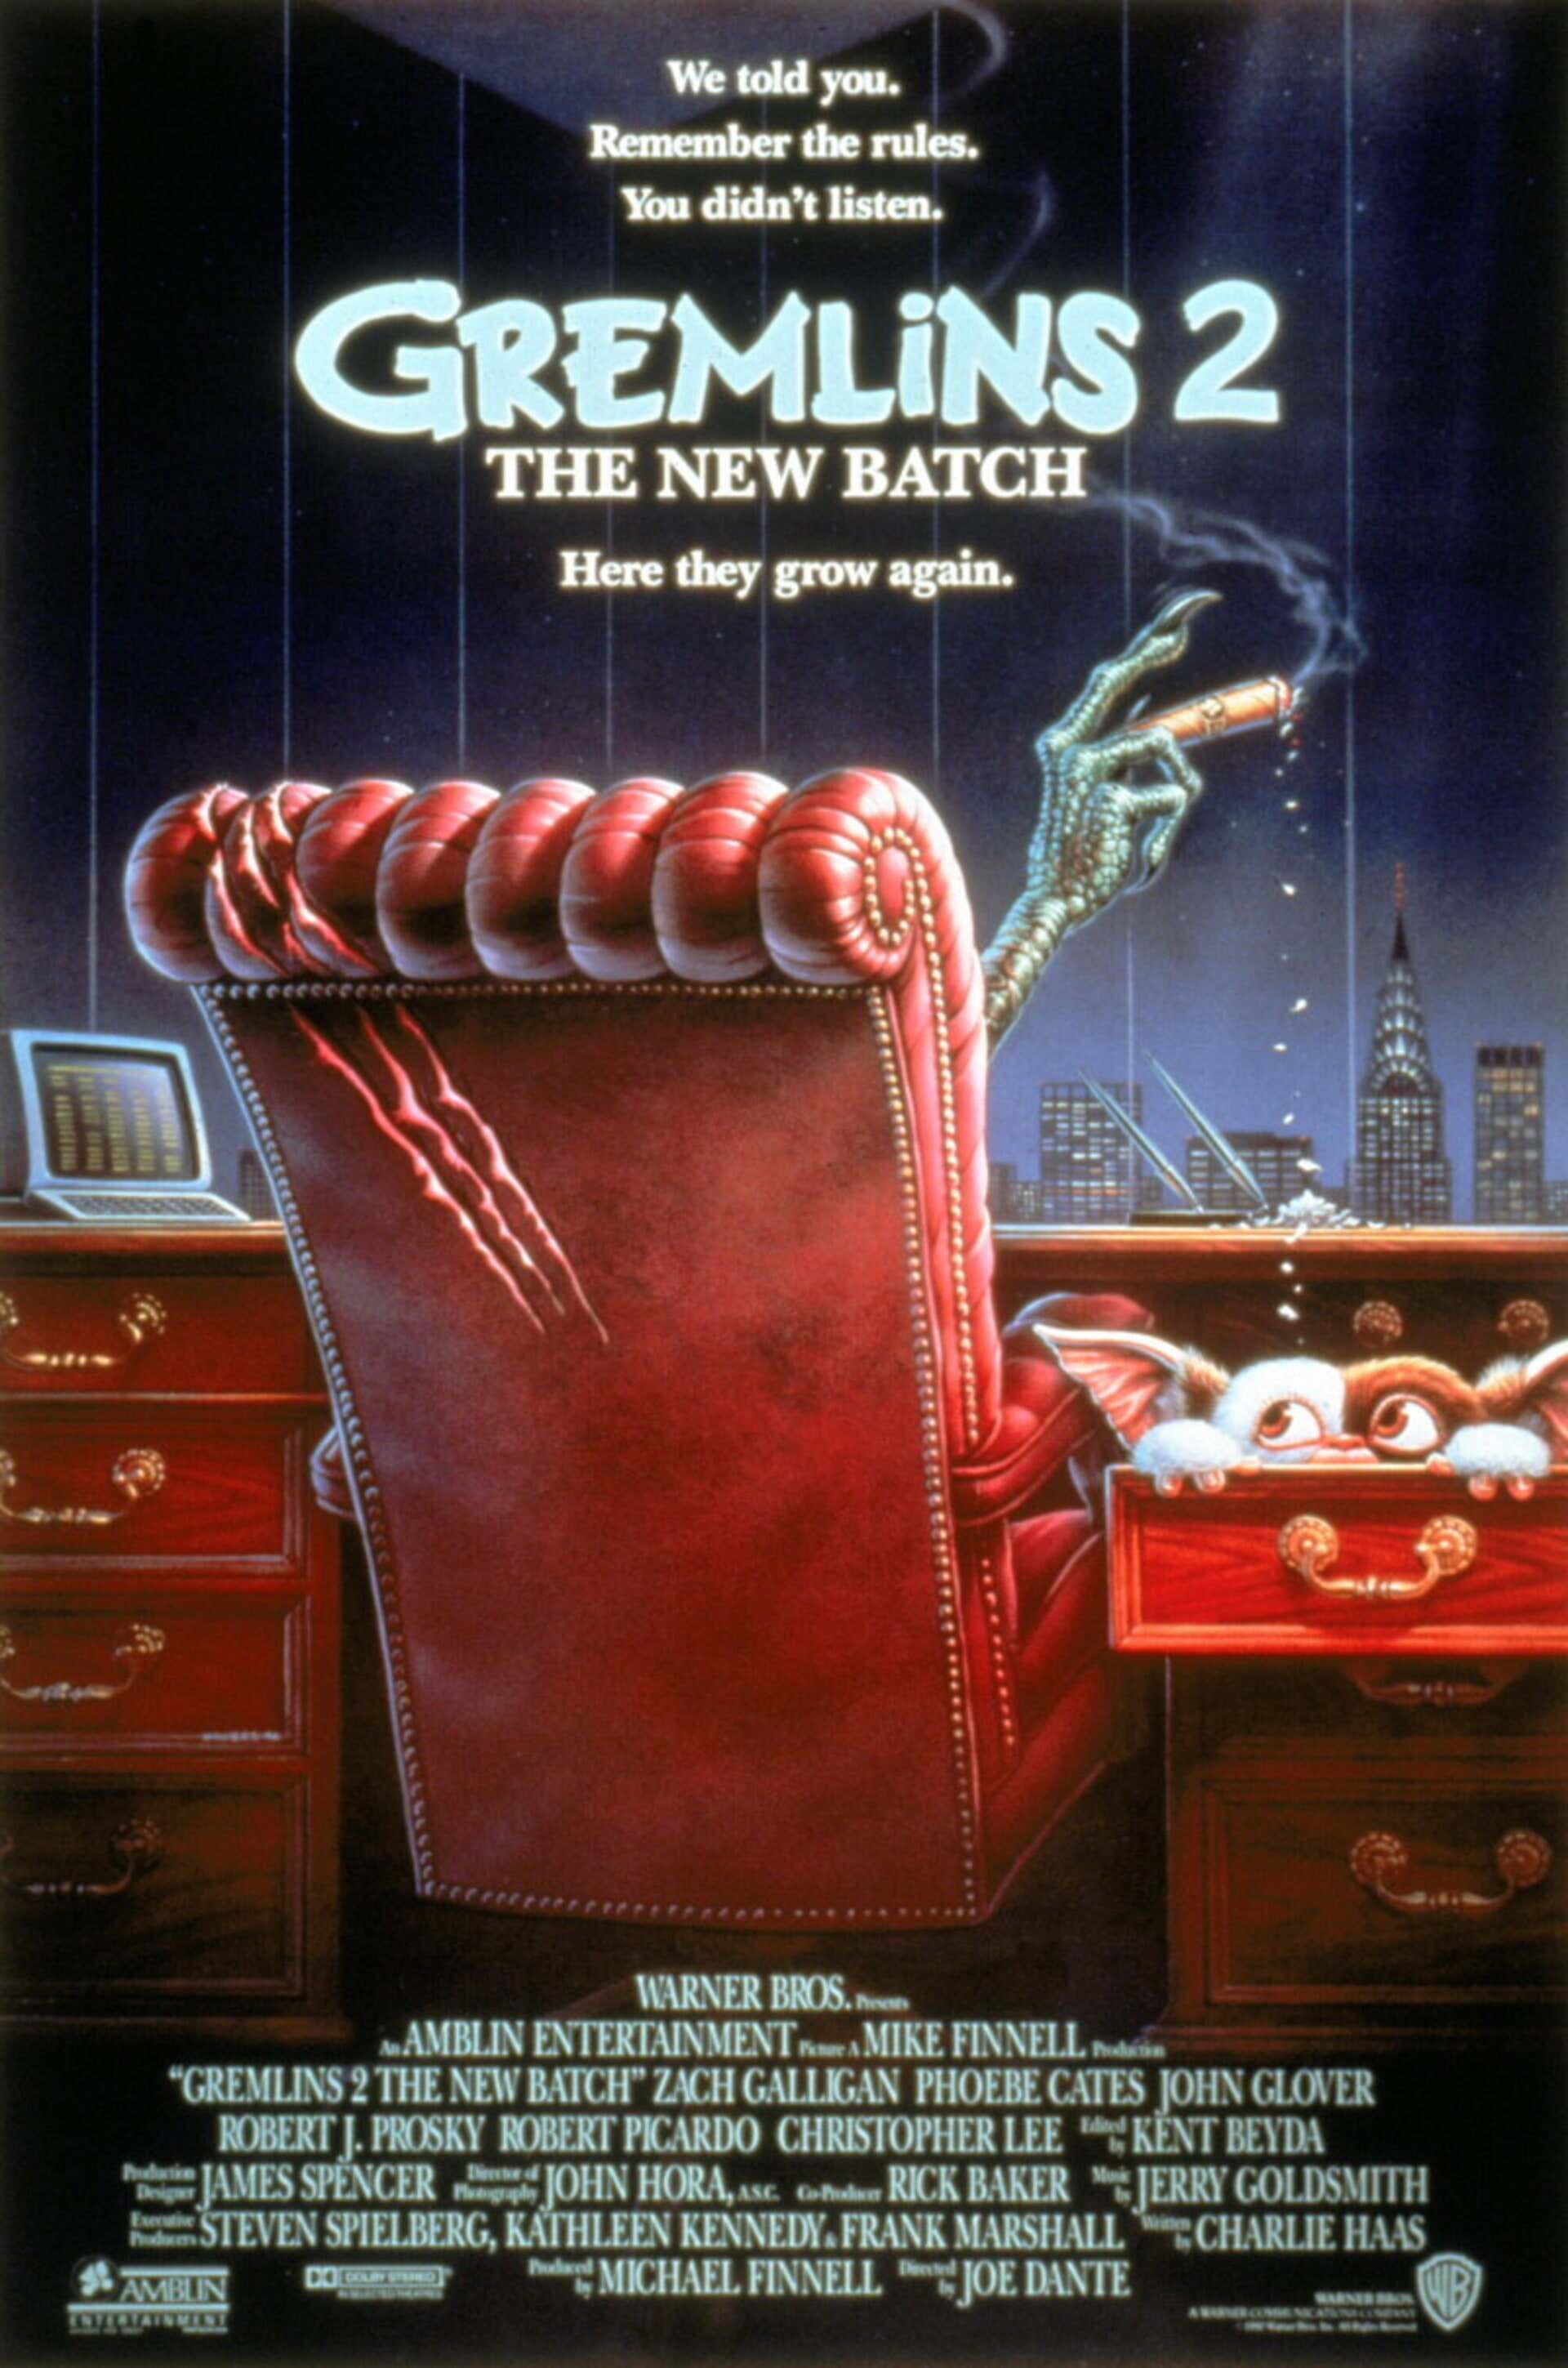 Gremlins 2: The New Batch - Poster 1